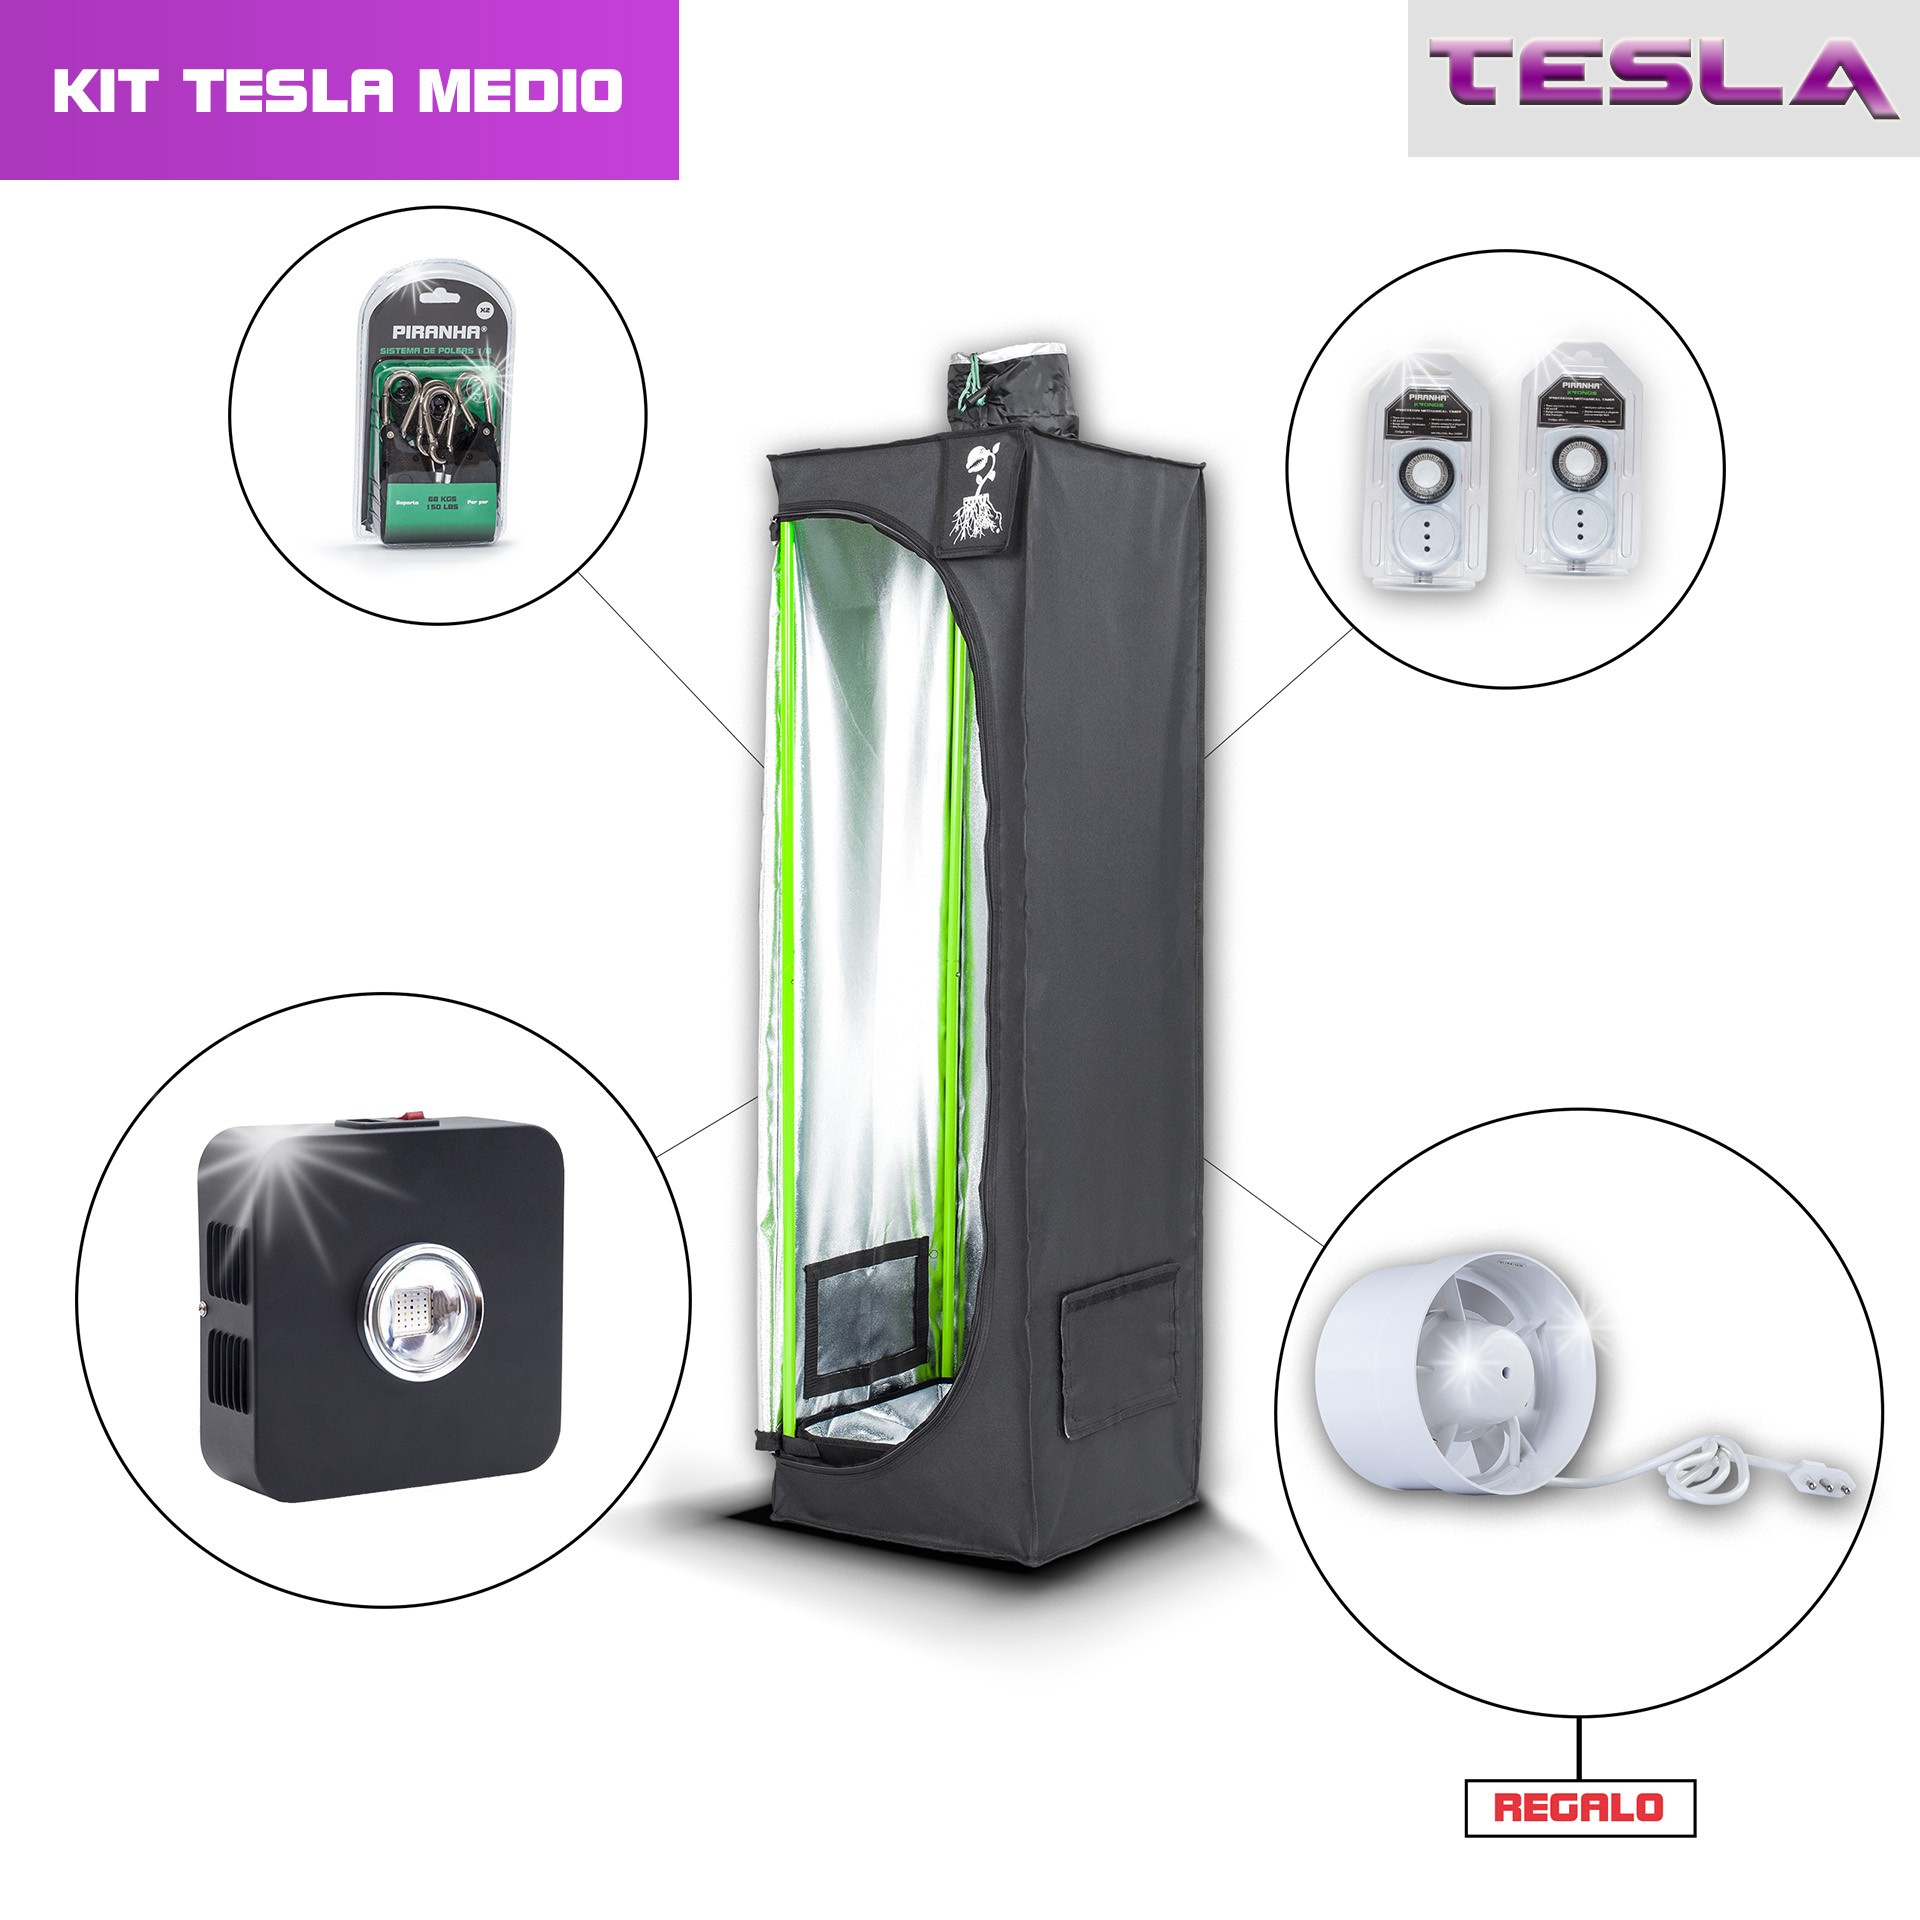 Kit Piranha Tesla 40 - T90W Medio